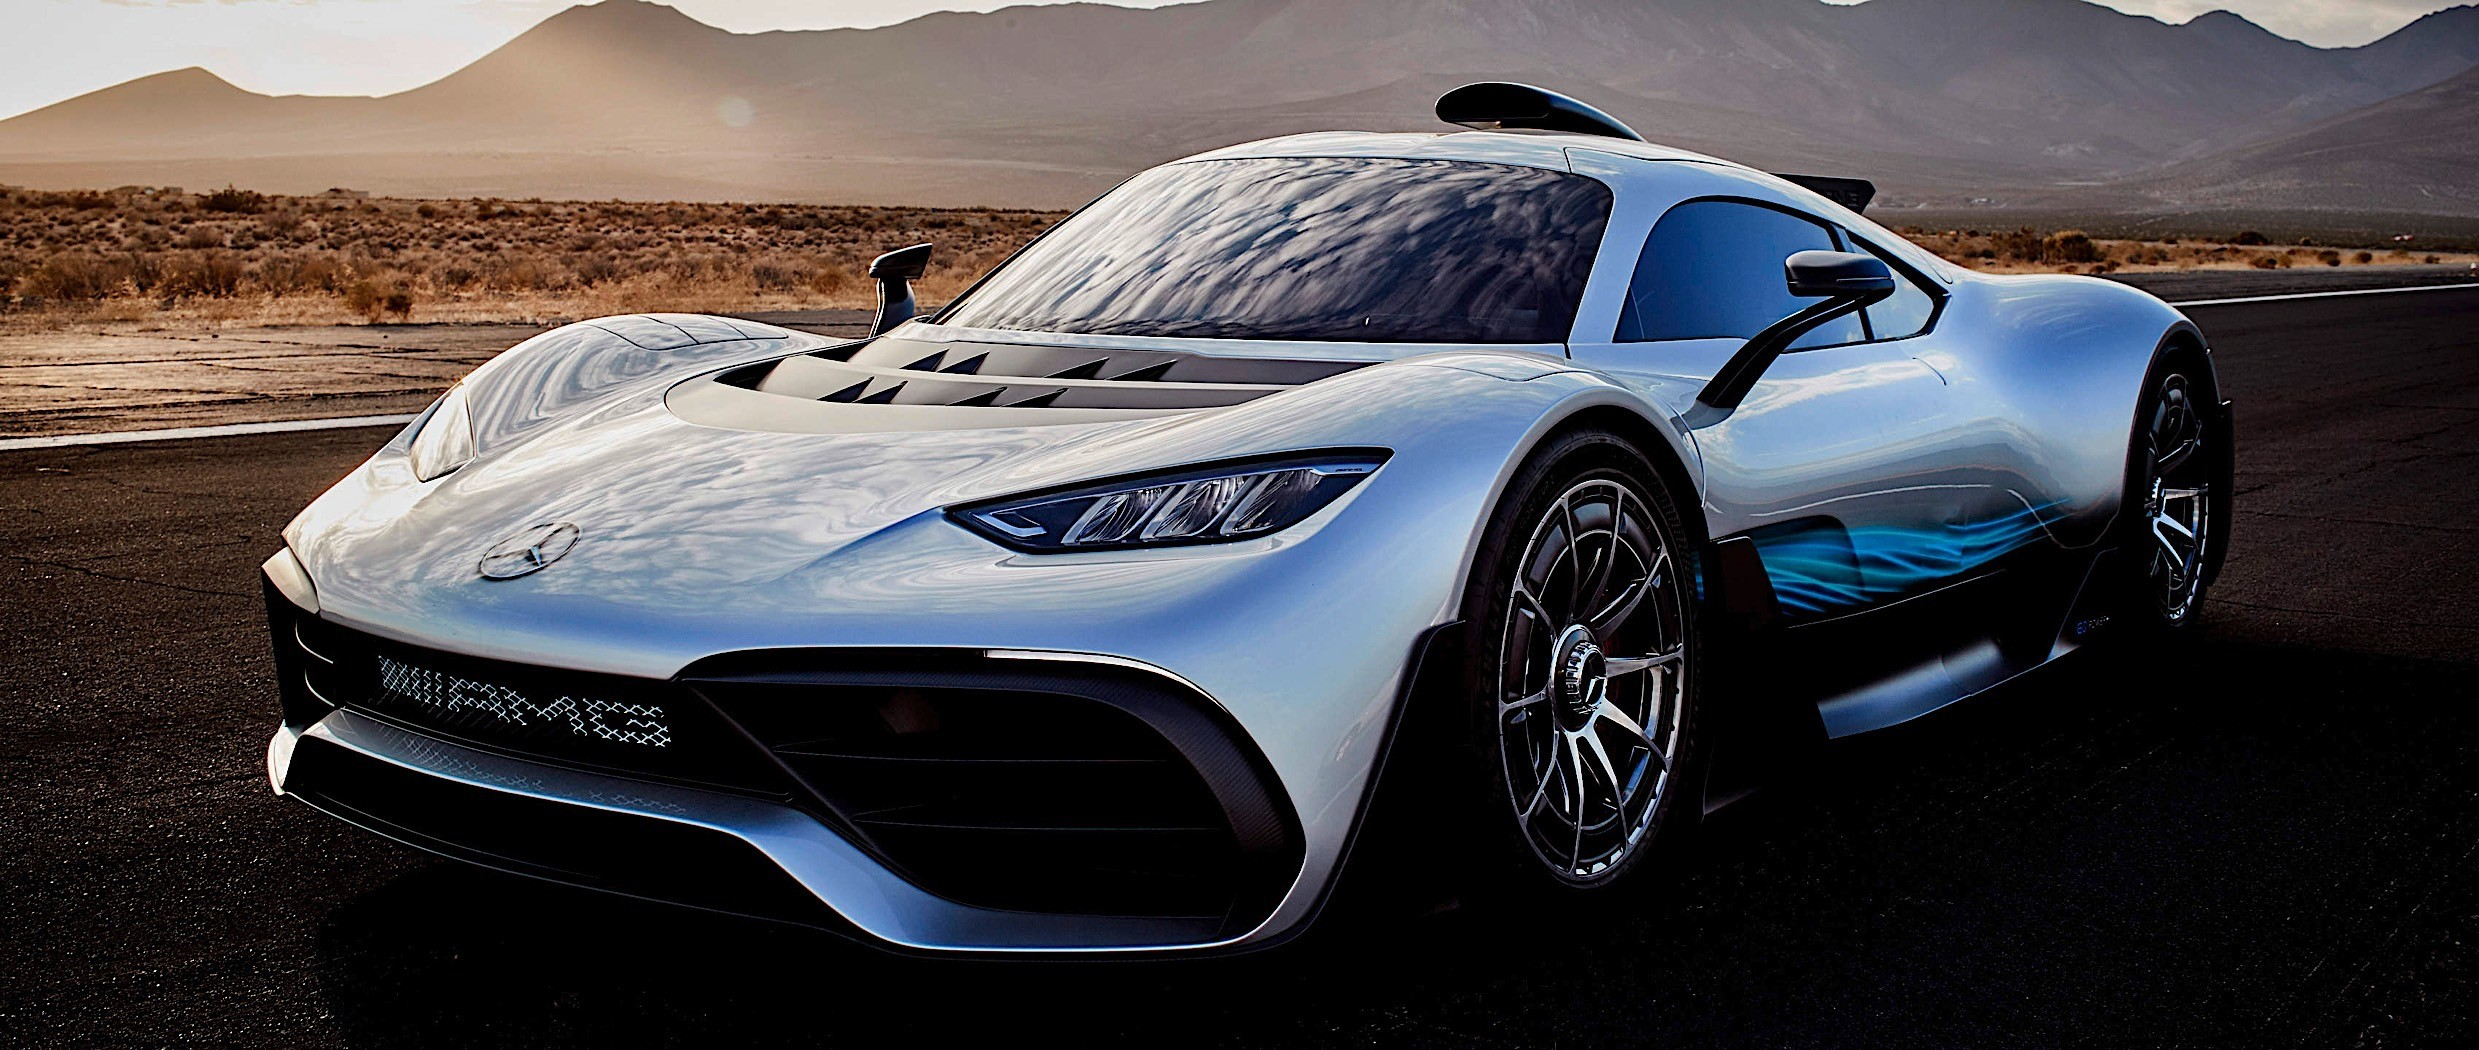 mercedes amg project one shines in new wallpaper gallery autoevolution. Black Bedroom Furniture Sets. Home Design Ideas